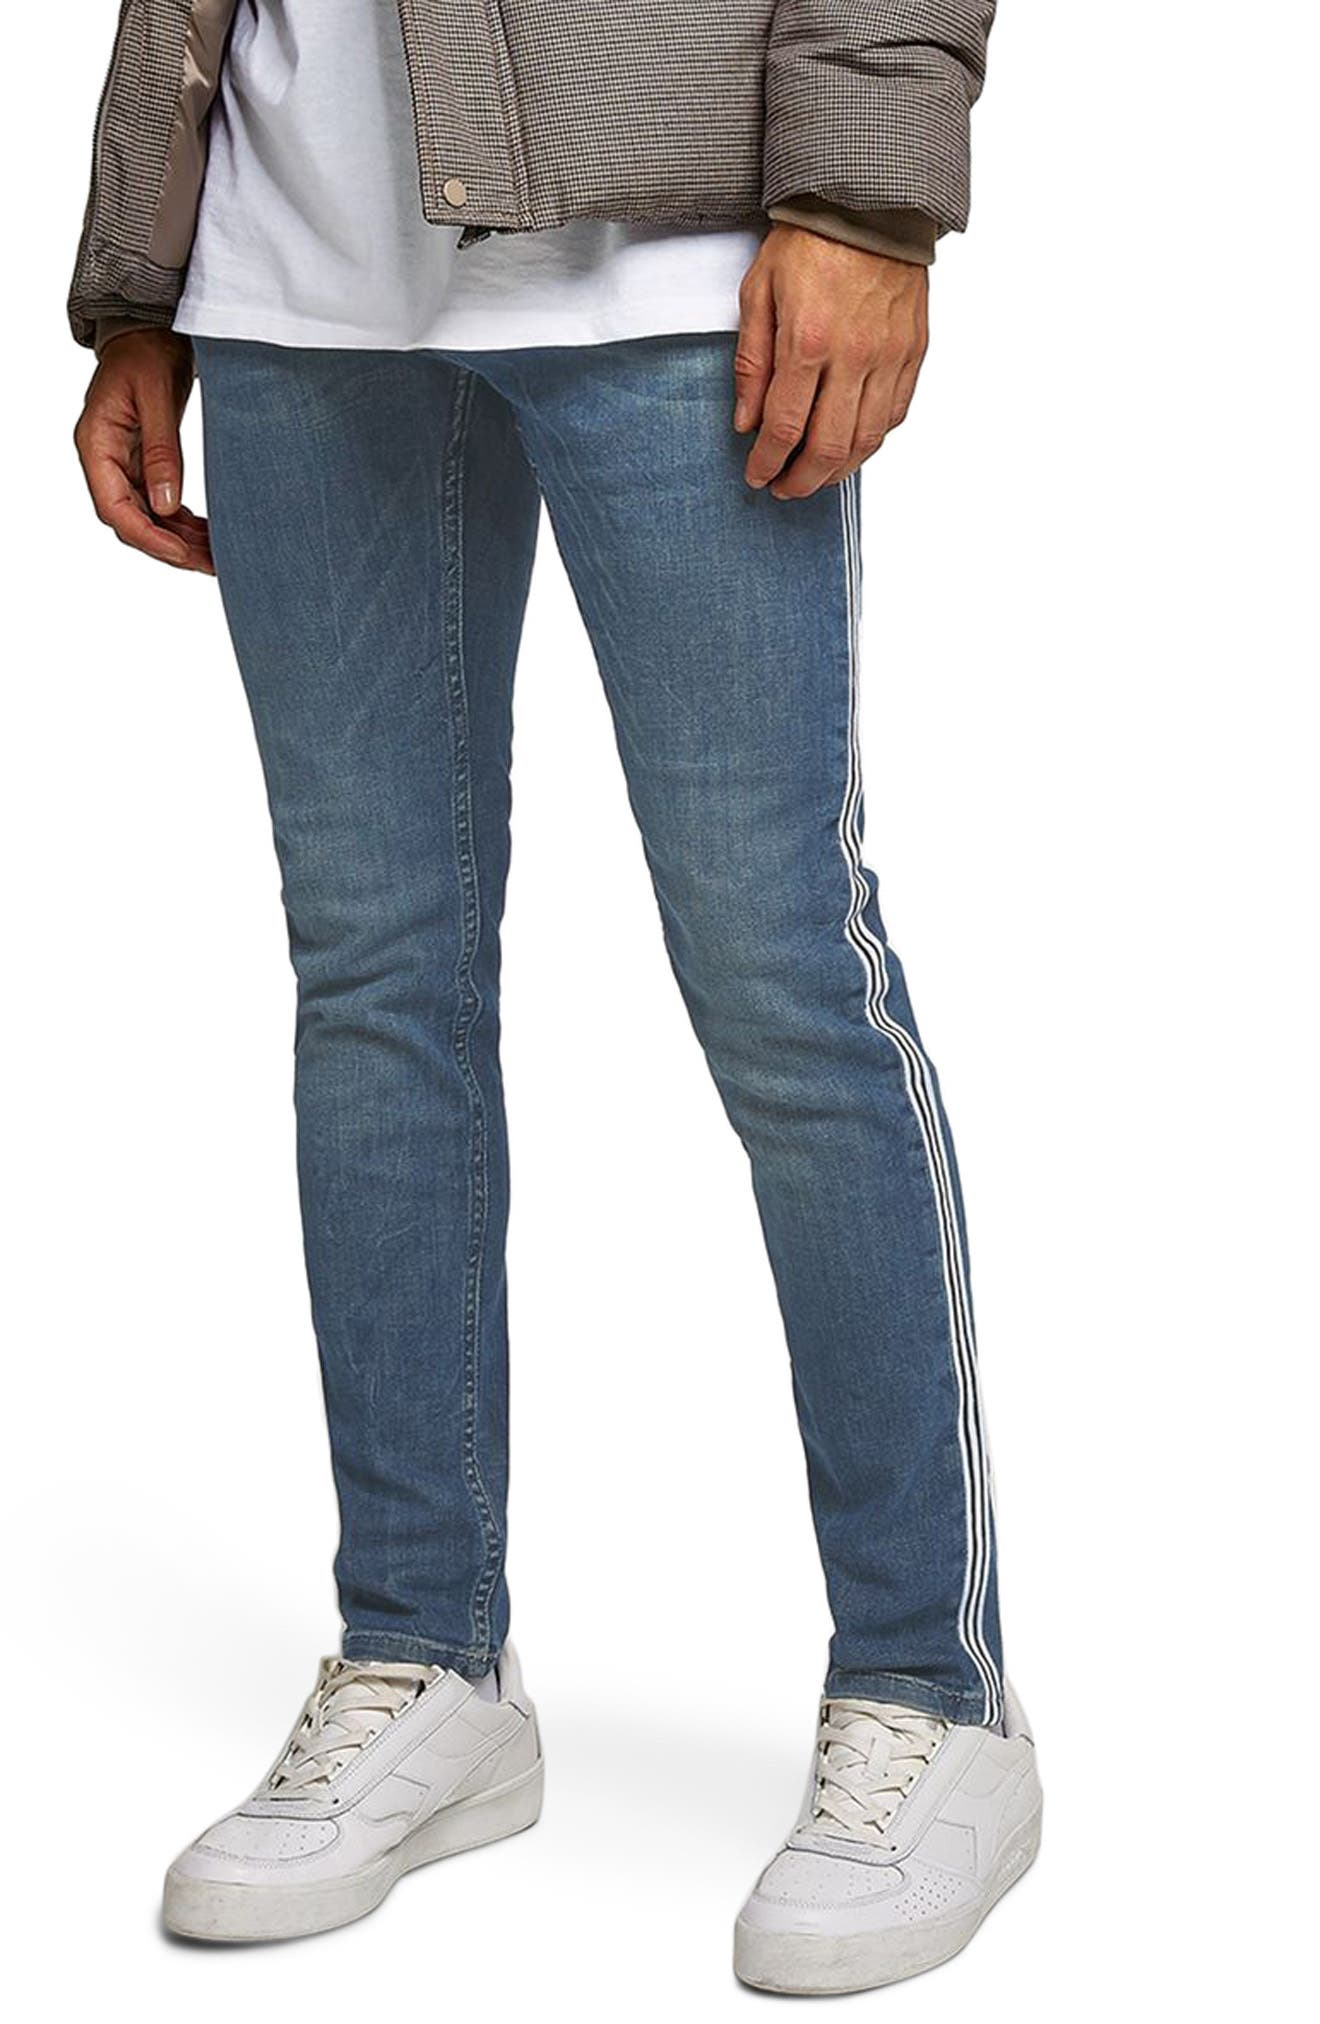 TOPMAN,                             Tape Stretch Skinny Fit Jeans,                             Main thumbnail 1, color,                             400